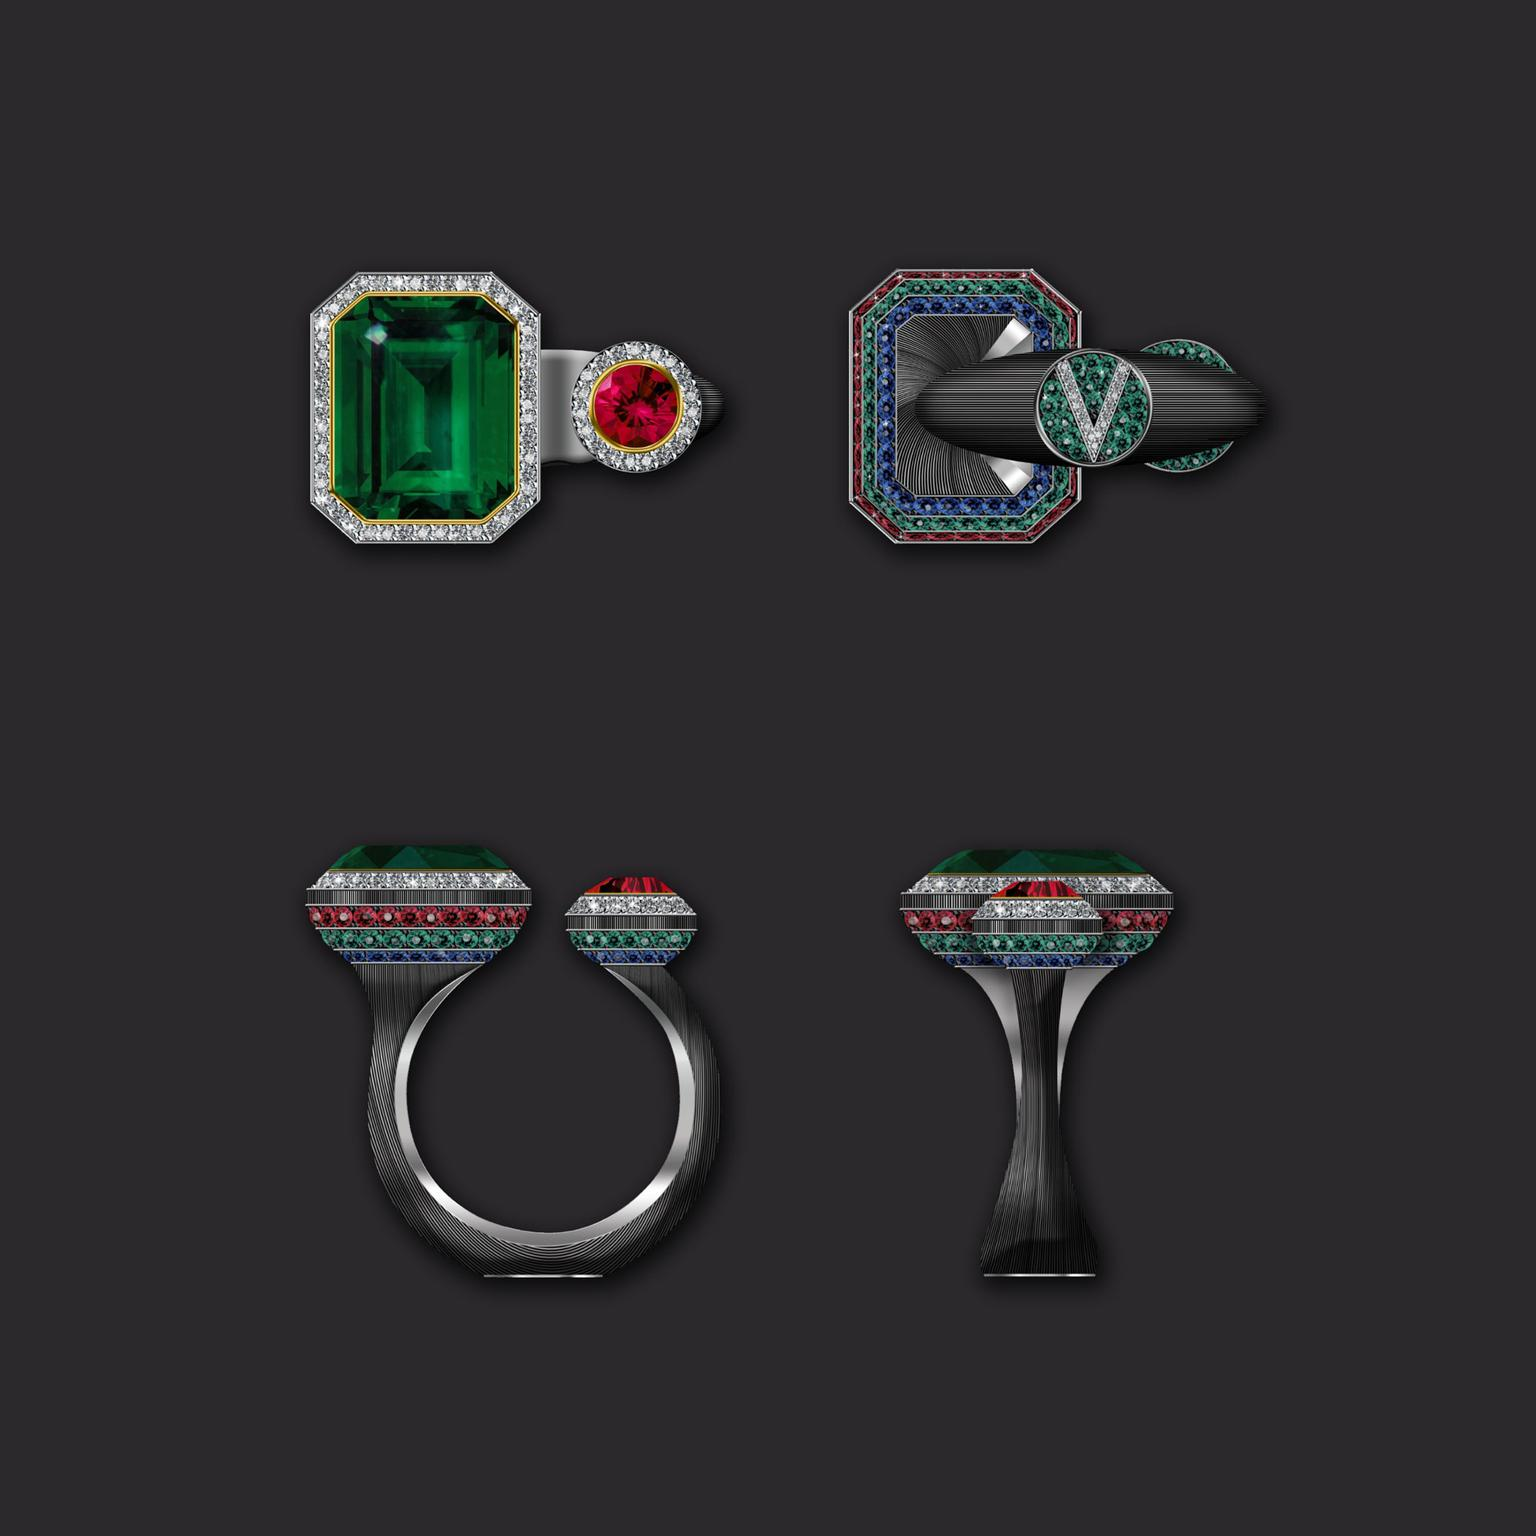 Maxim V ring with Zambian emerald ruby diamond and sapphire